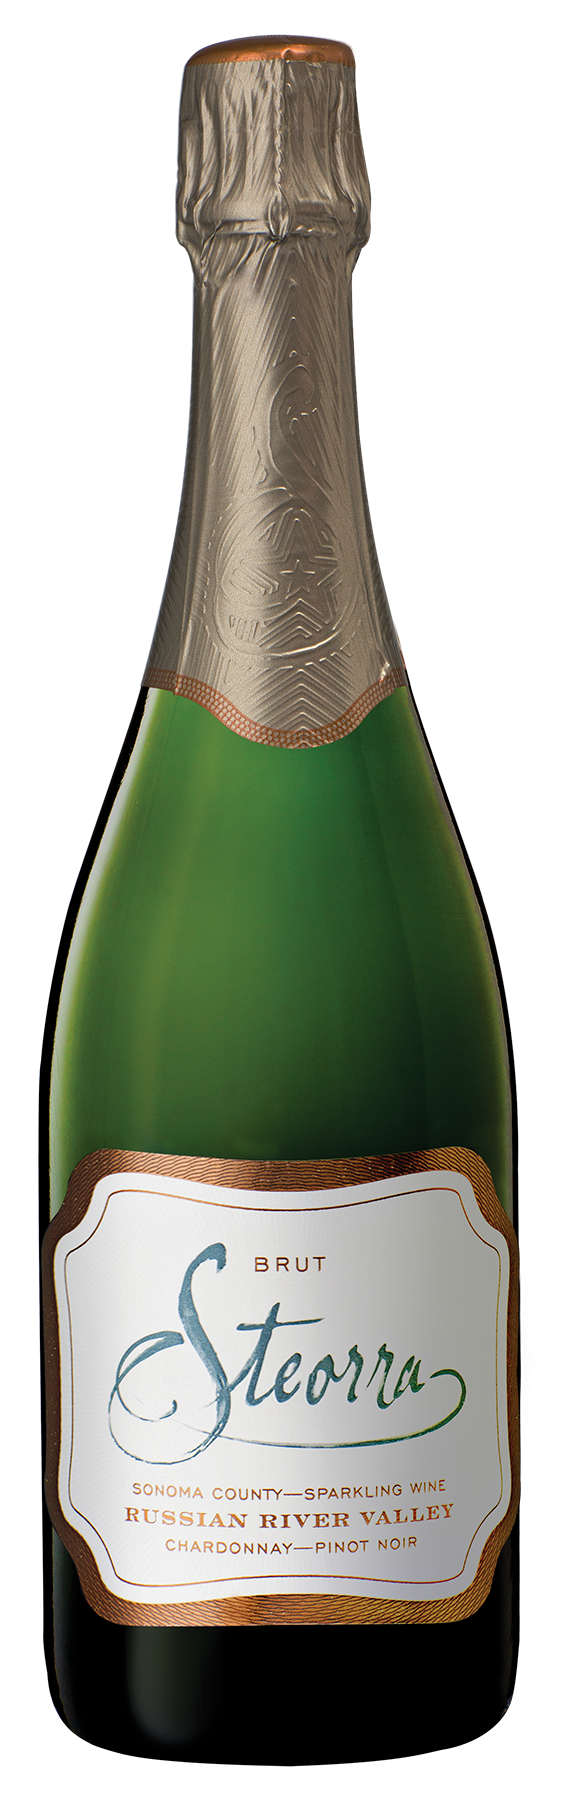 Steorra Russian River Valley Brut Sparkling Wine bottle shot